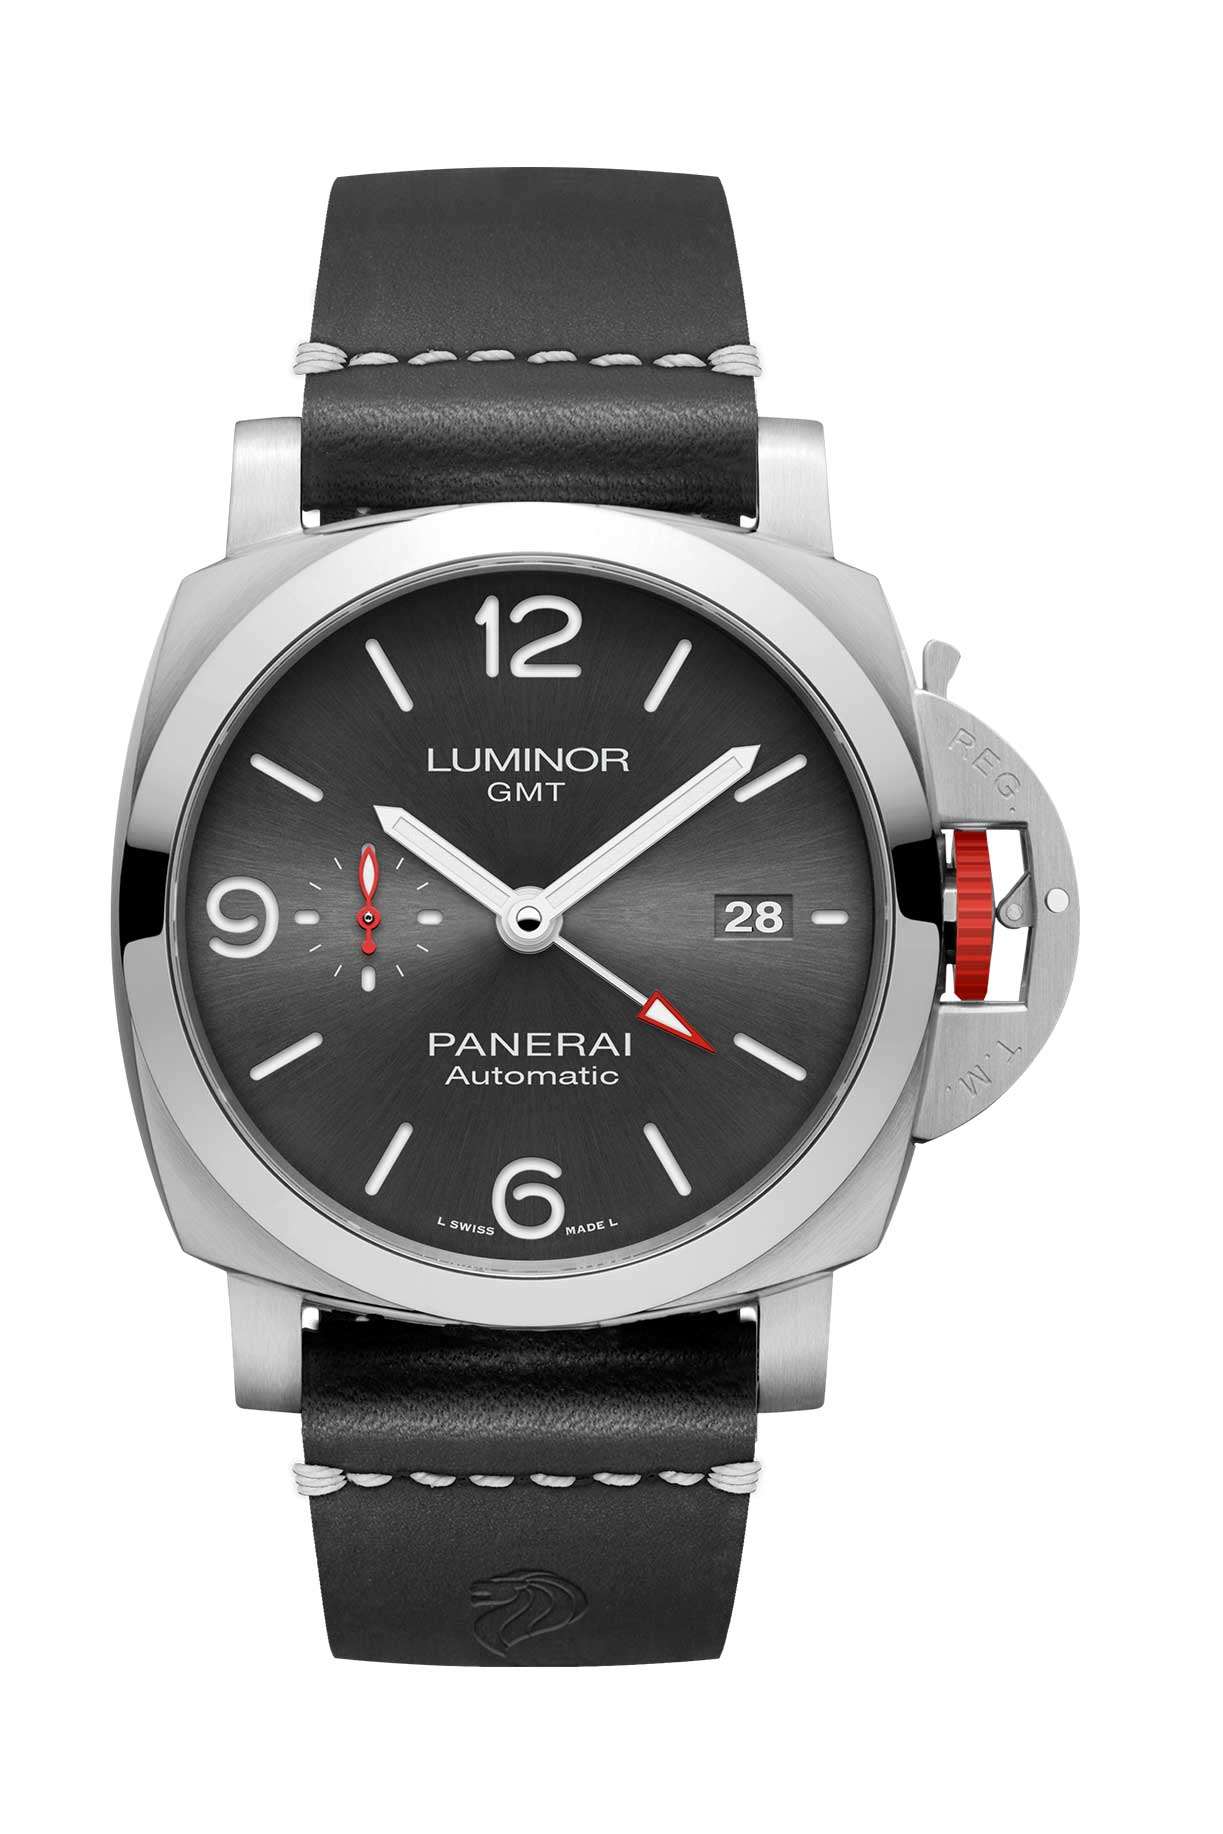 The Panerai Luminor GMT ION Special Edition – 44mm (PAM01177)